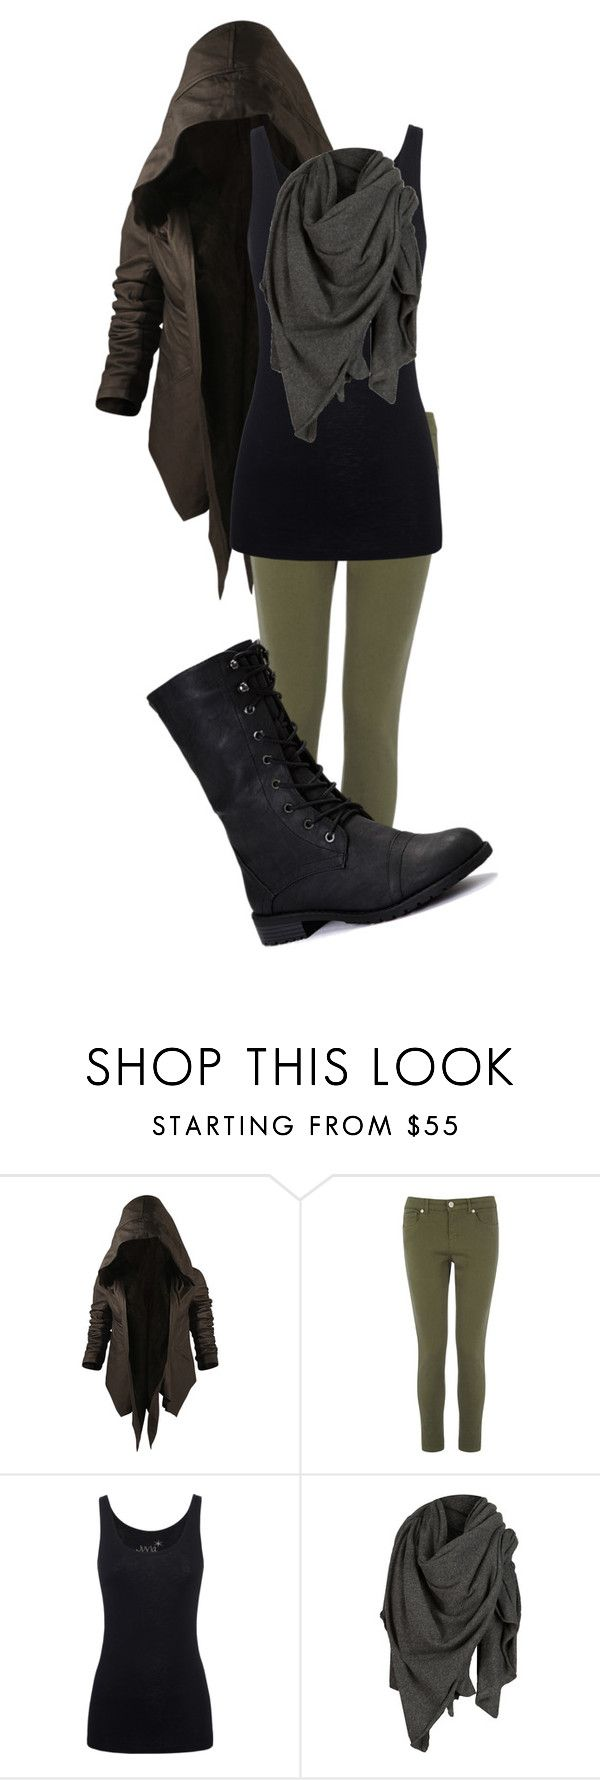 """""""female Robin hood"""" by chantry-joy ❤ liked on Polyvore featuring Nicholas K, Warehouse, Juvia, AllSaints and Nature Breeze"""